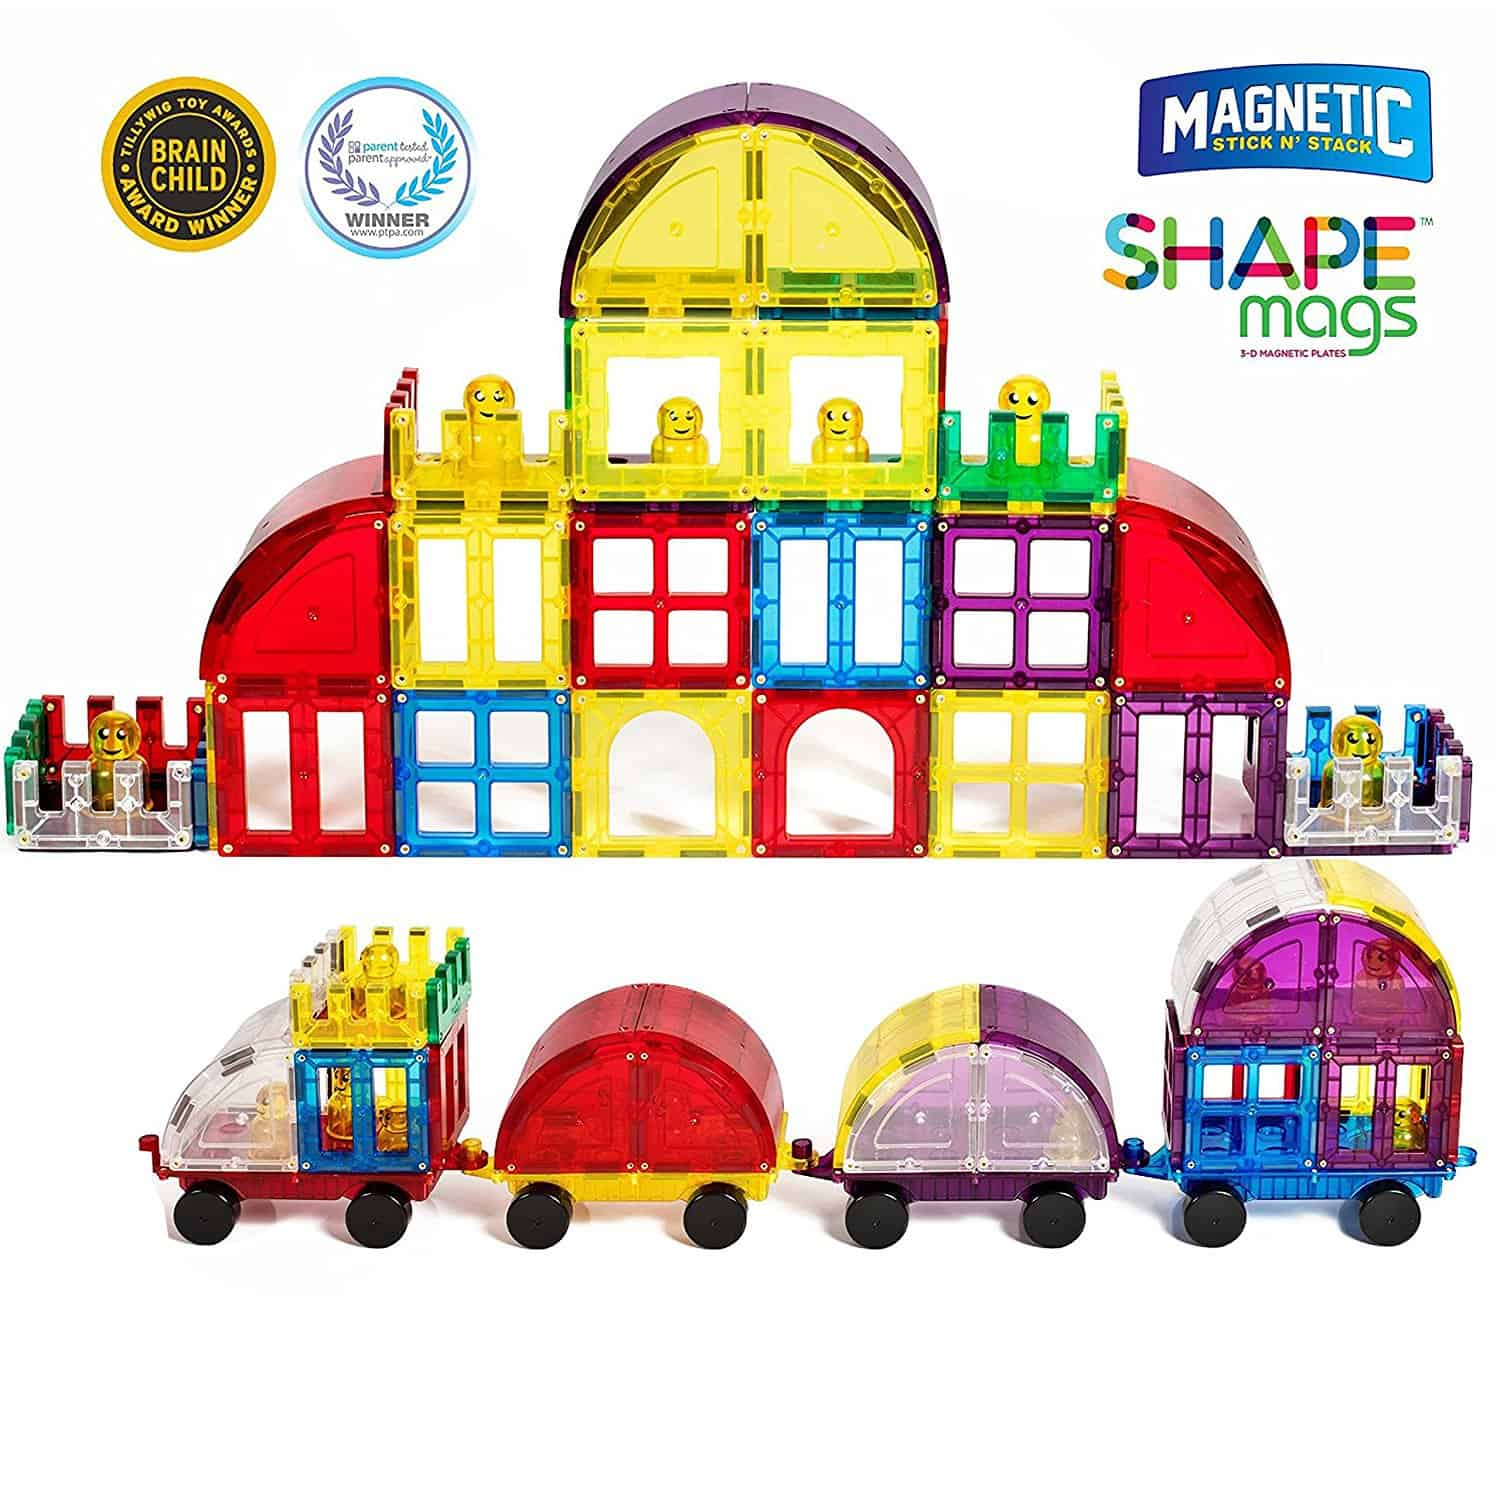 Shape Mags Magnets toy review